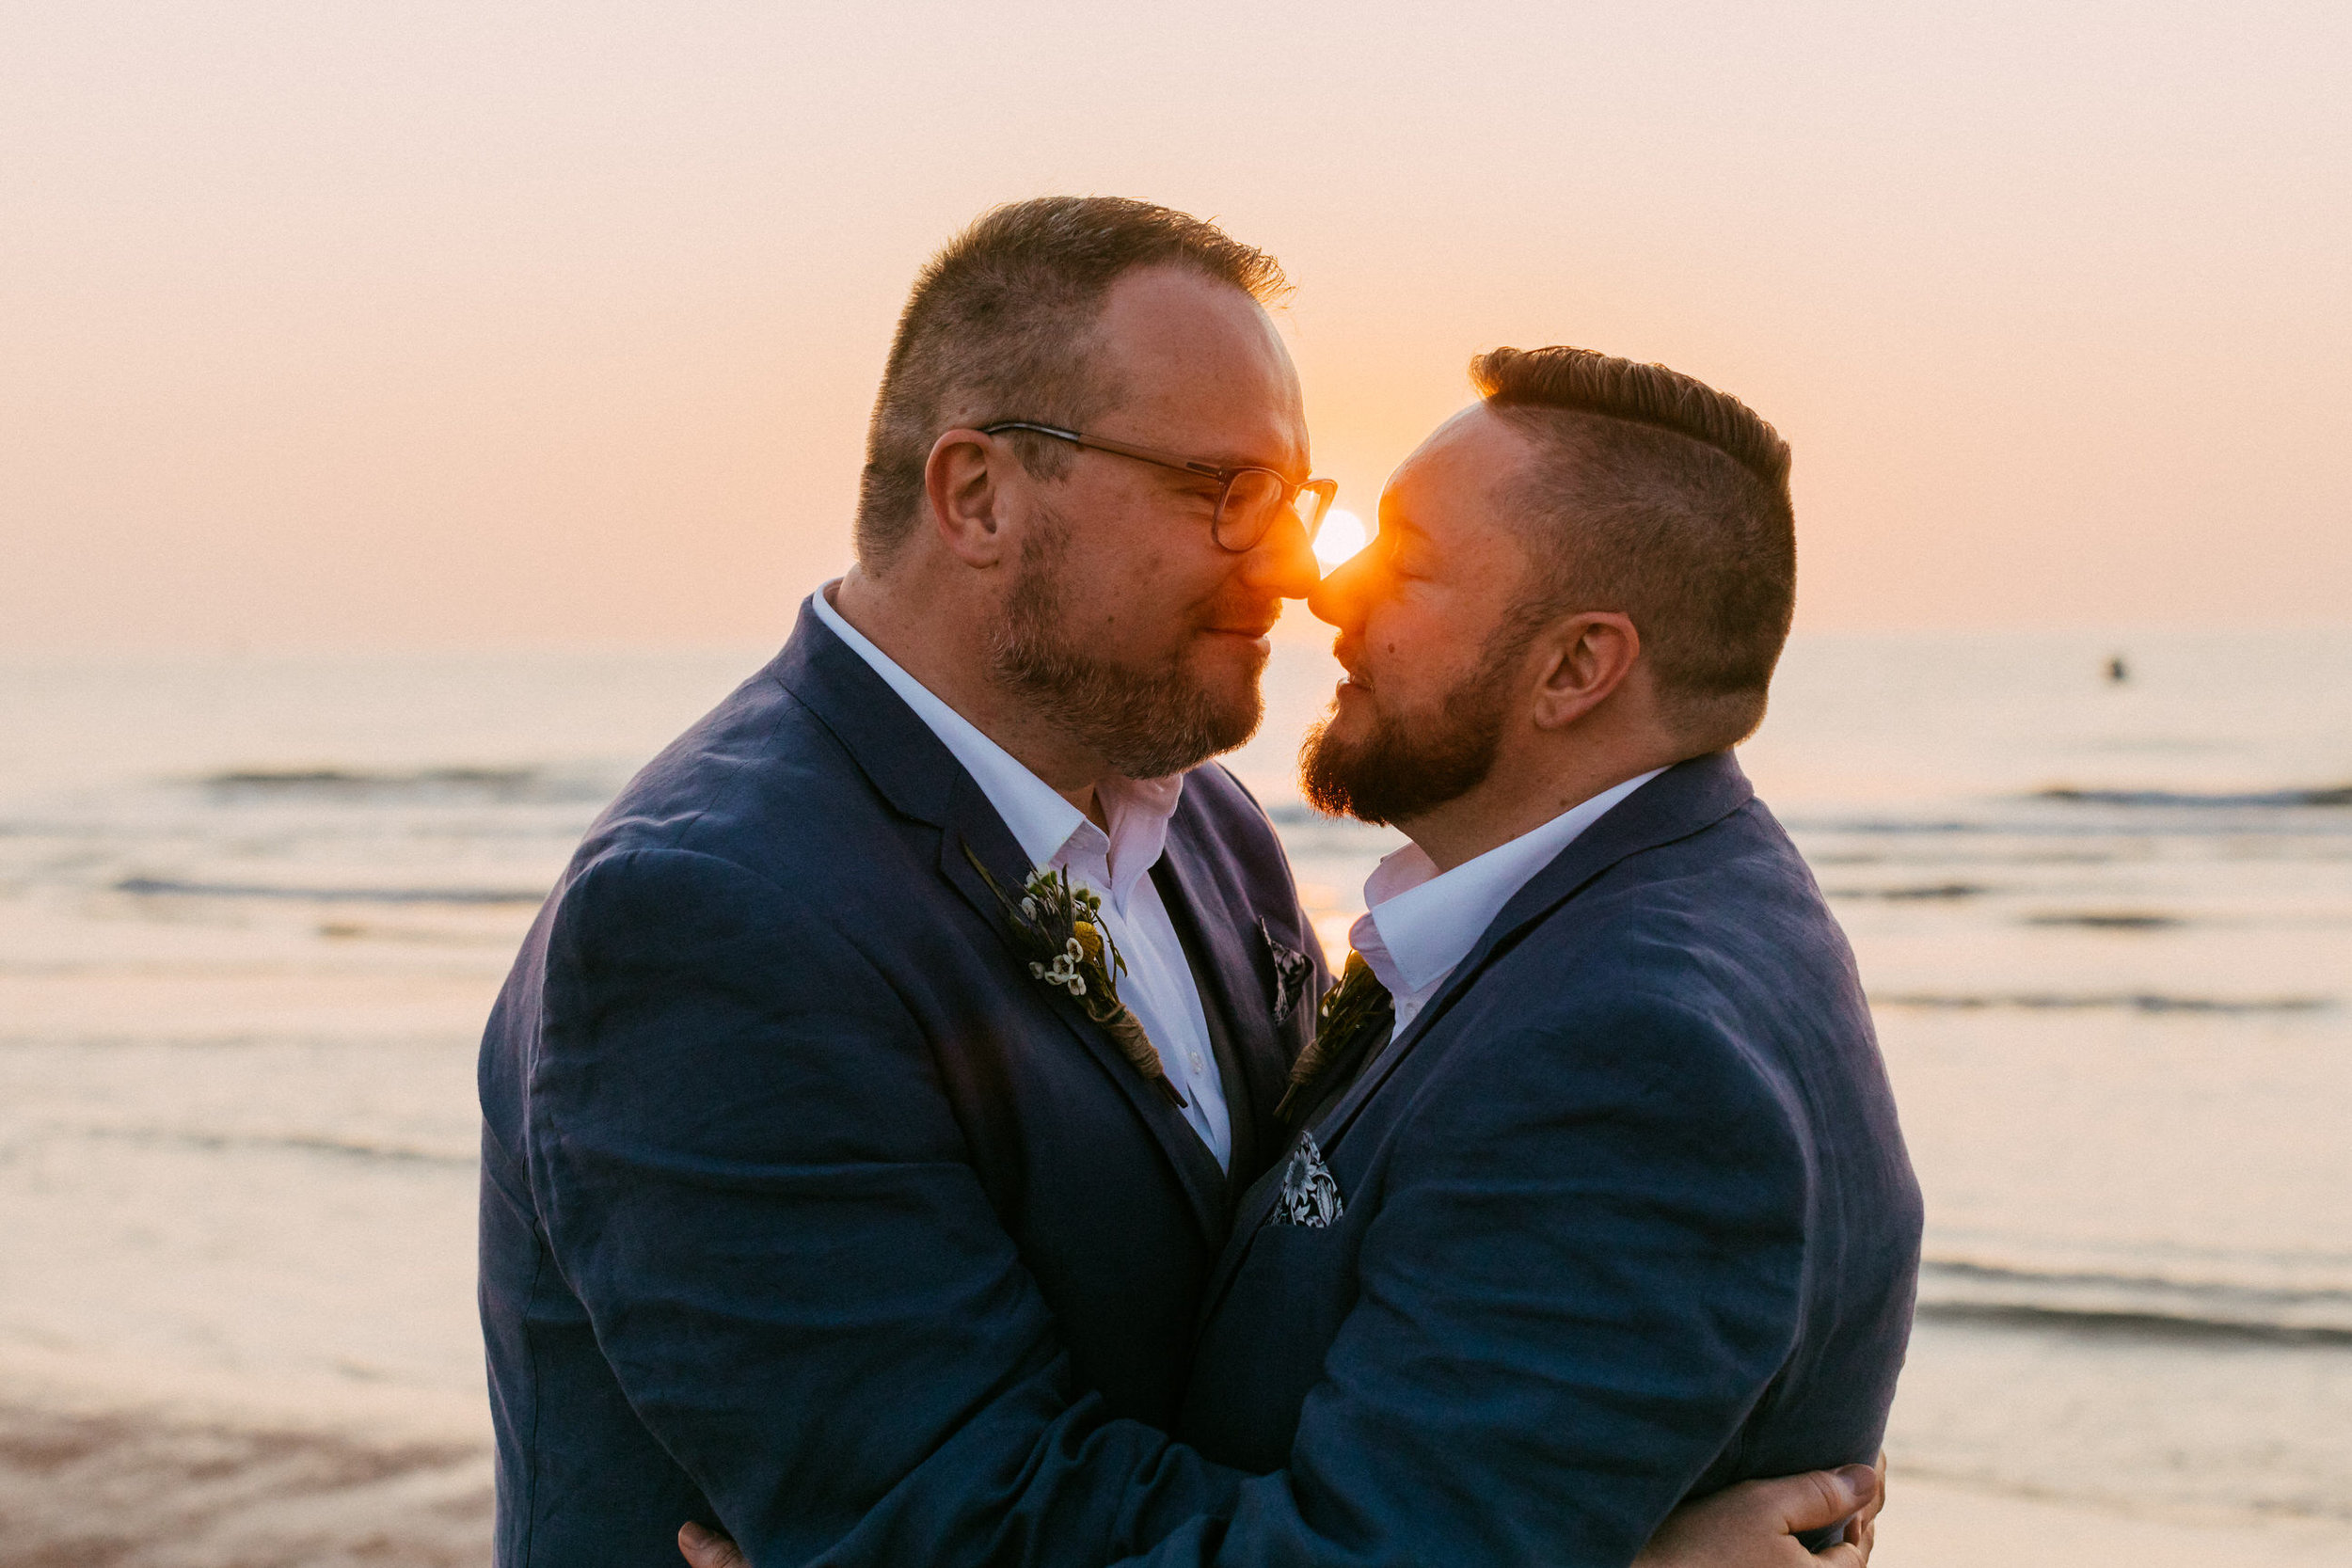 beautiful same sex beach wedding 163.jpg